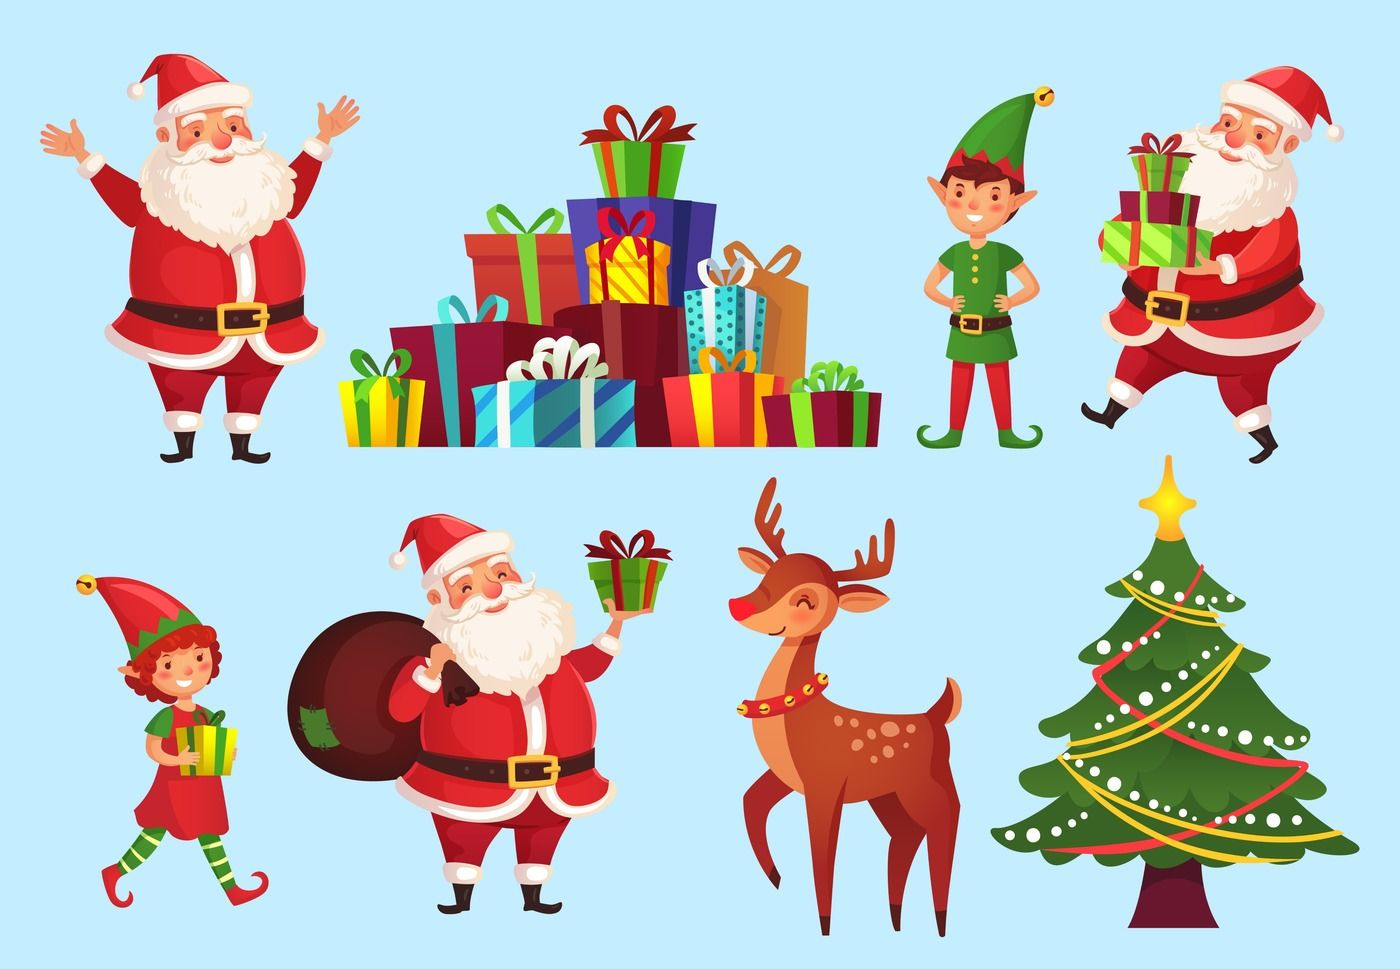 Cartoon Christmas Characters Xmas Tree With Santa Claus Gifts